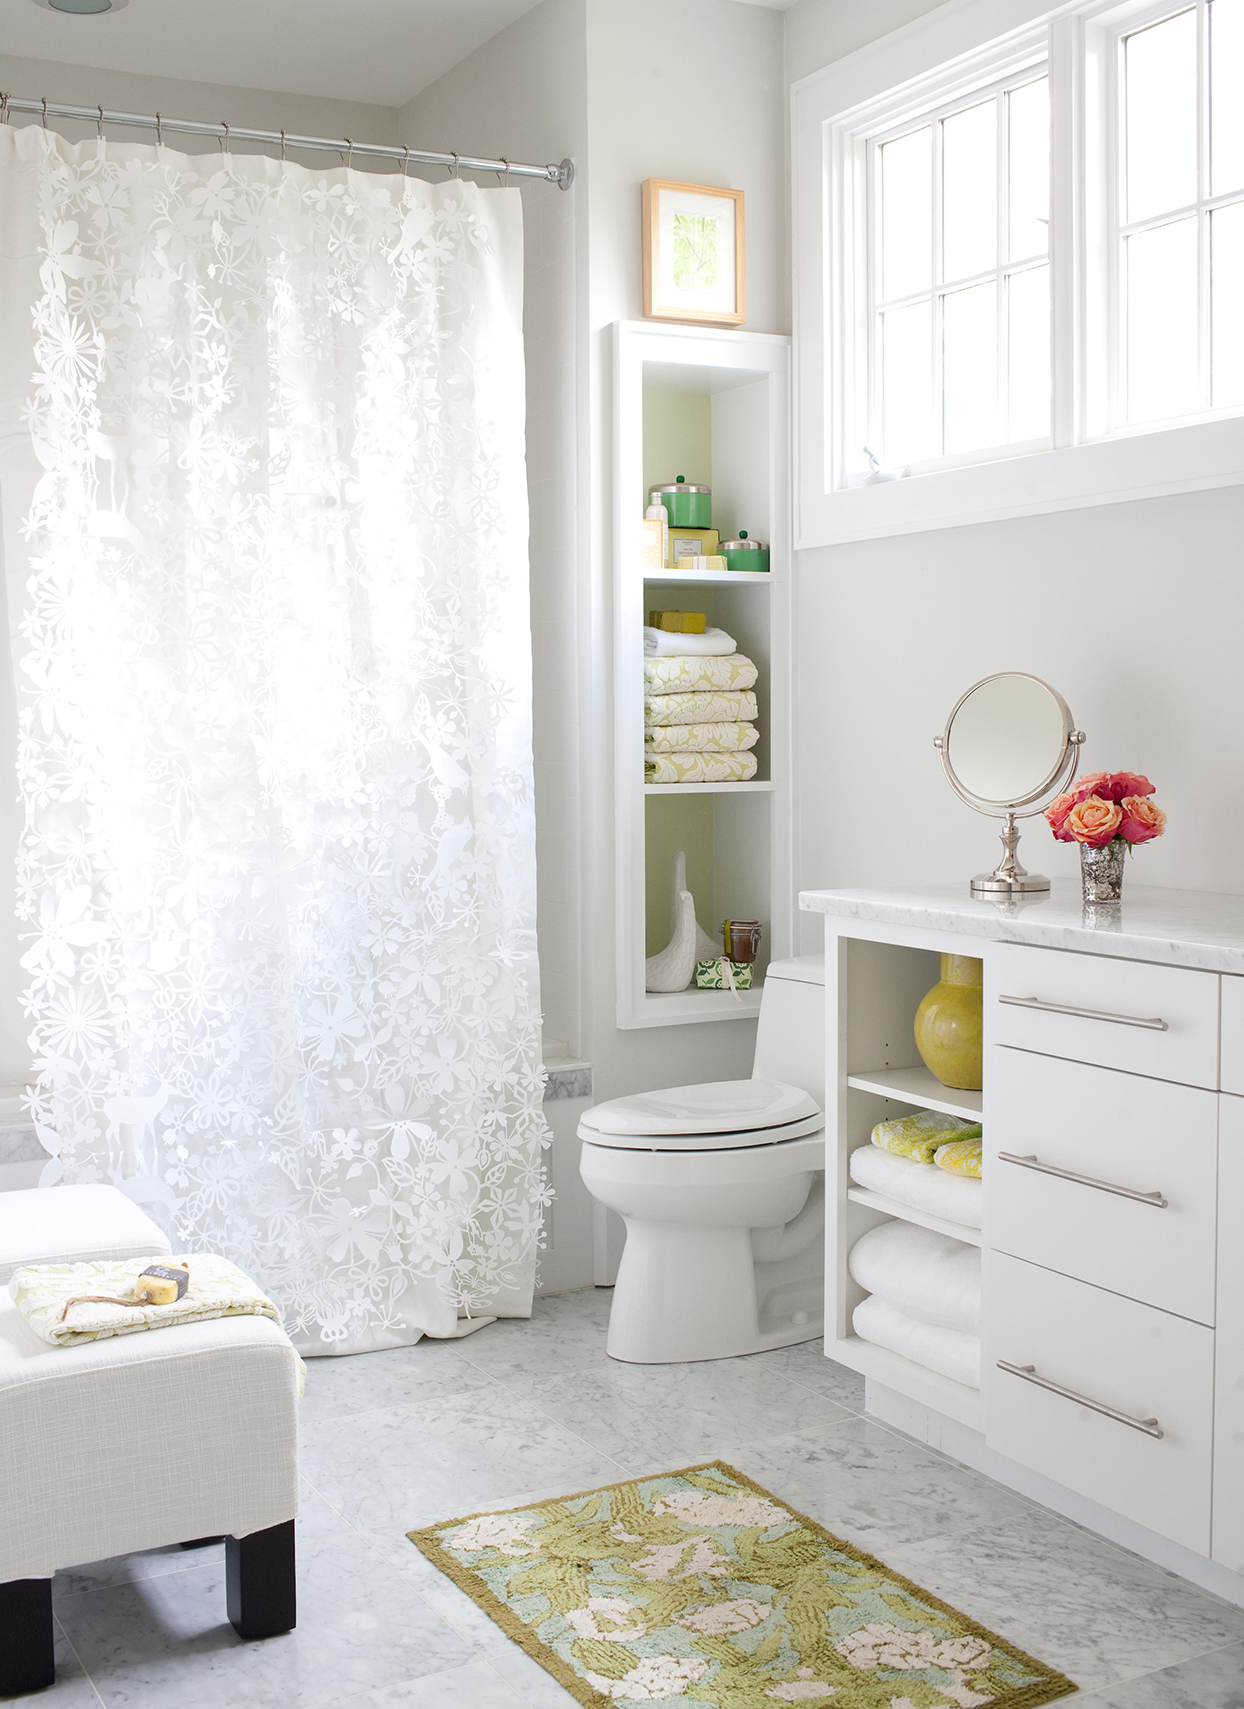 white bathroom with floral and yellow-green accents